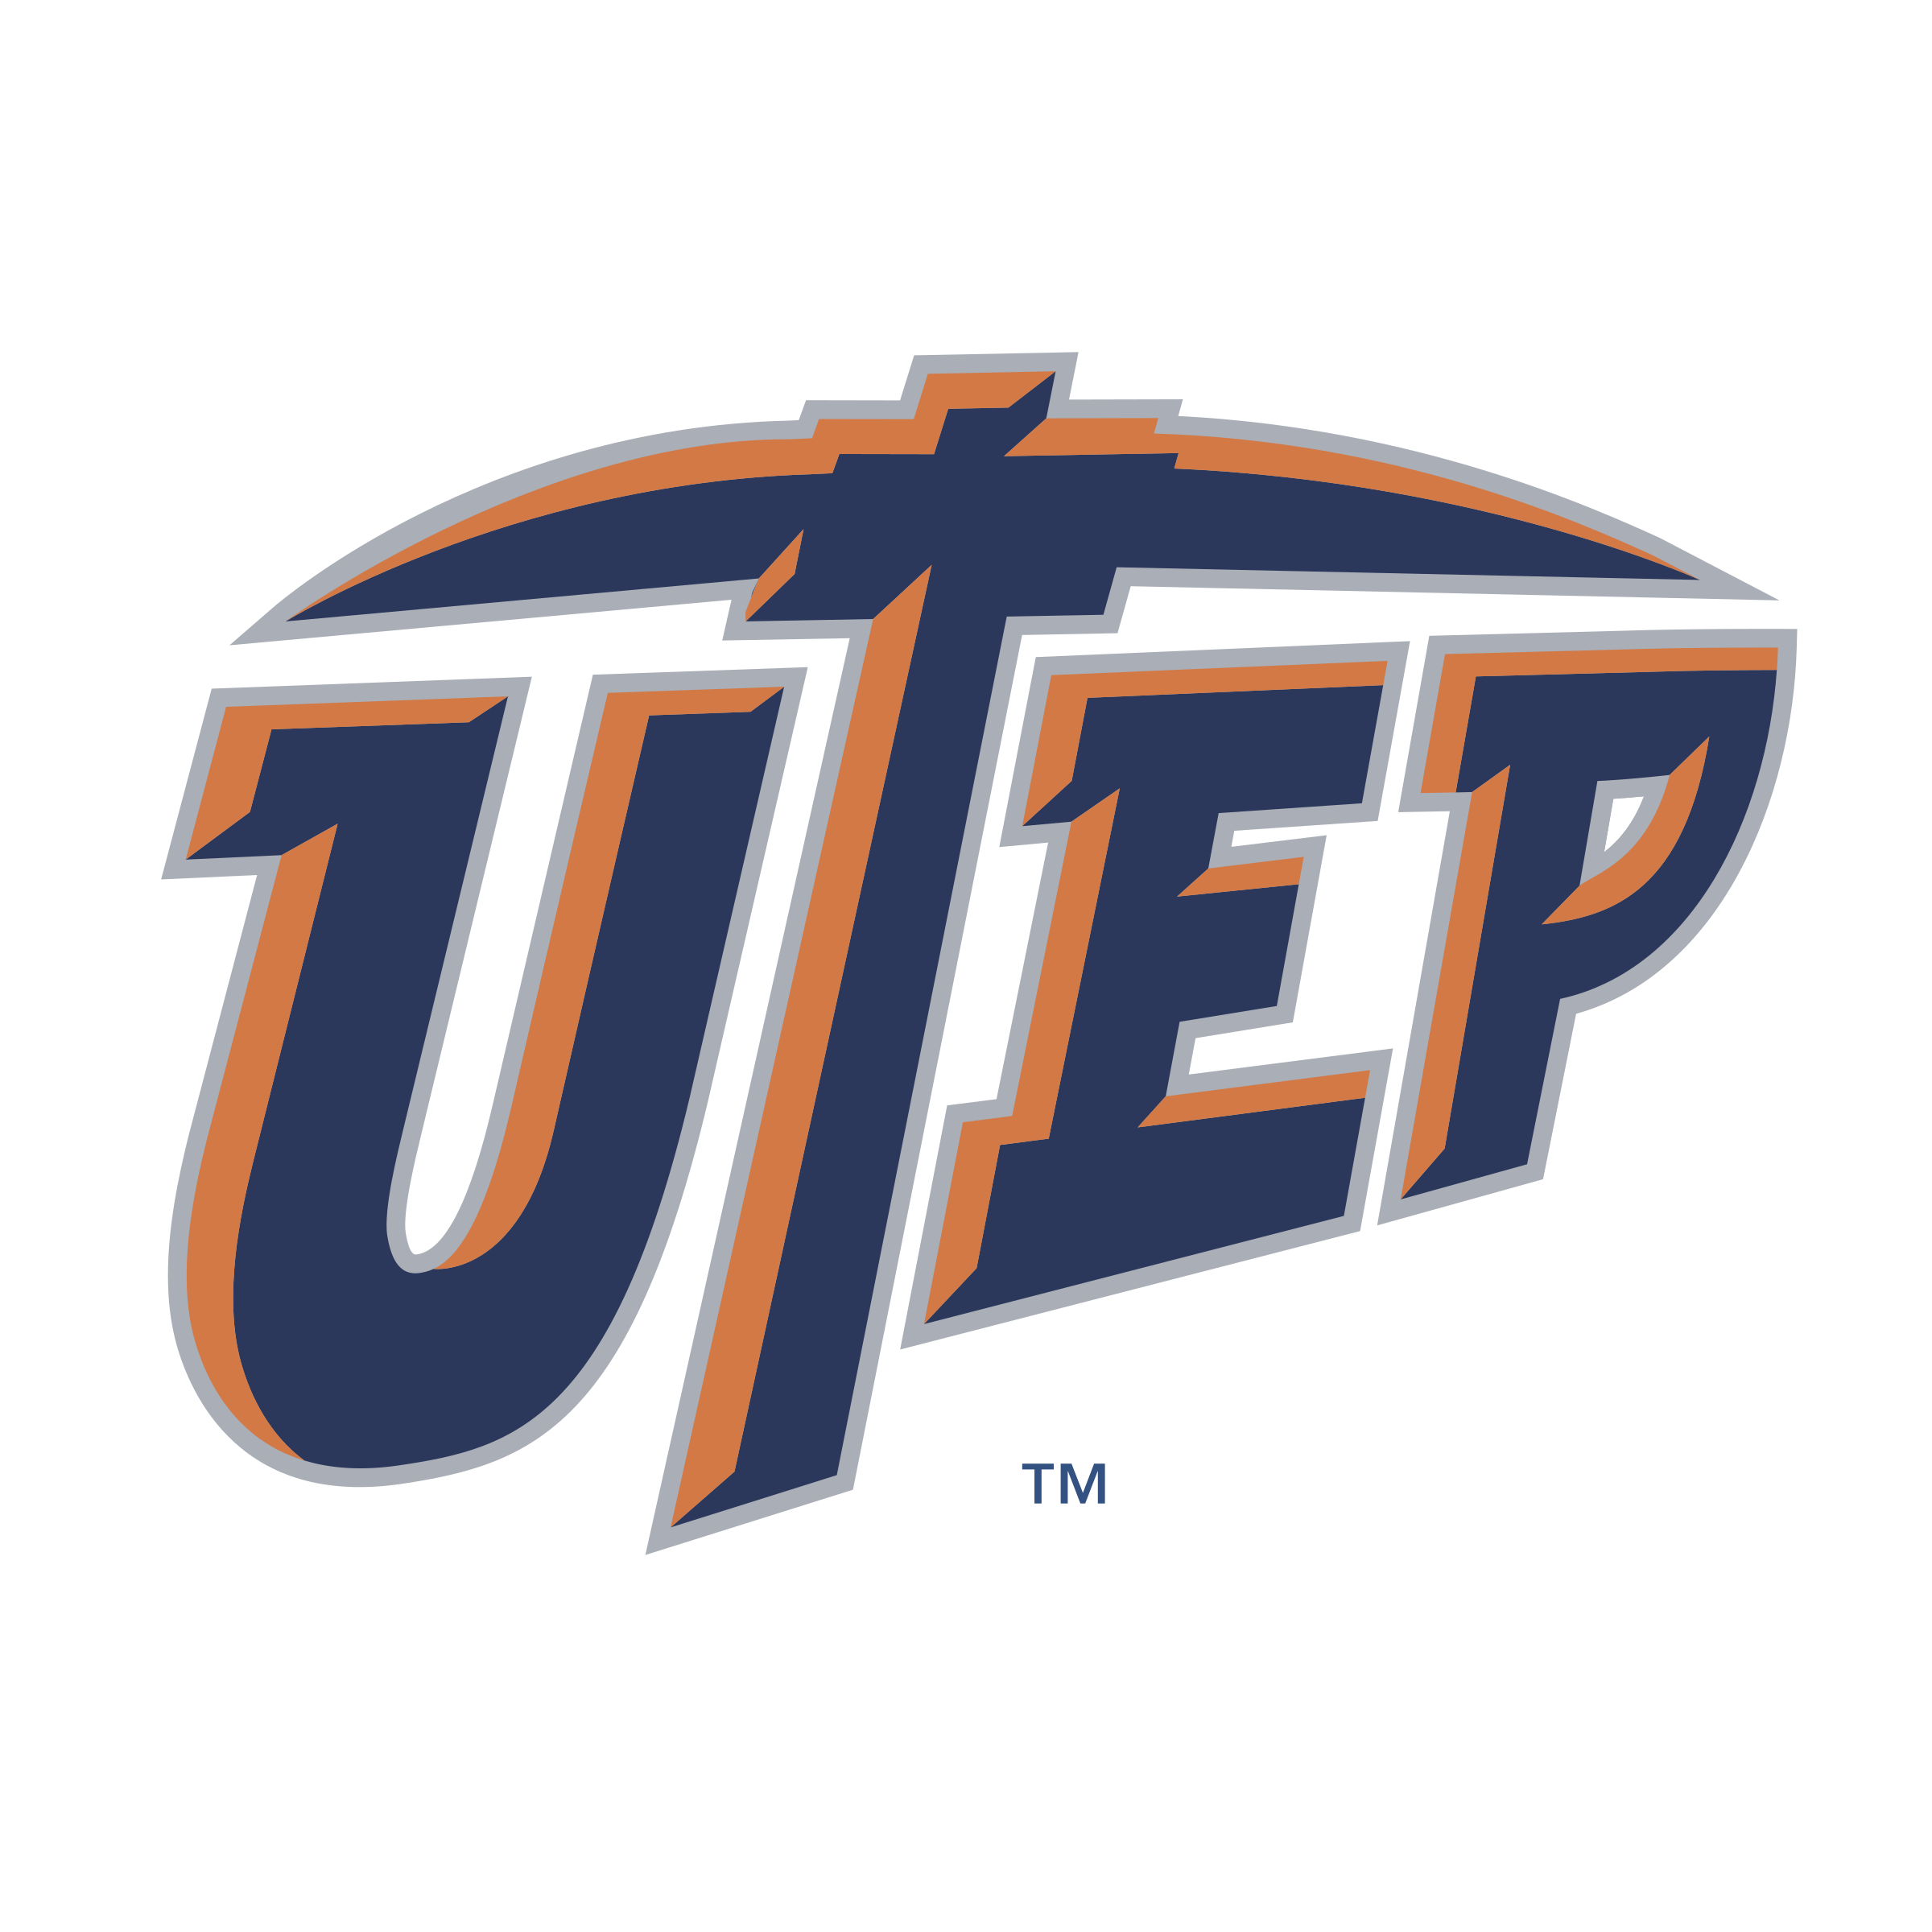 utep miners logo png transparent svg vector freebie supply rh freebiesupply com utep logo png utep logo jacket